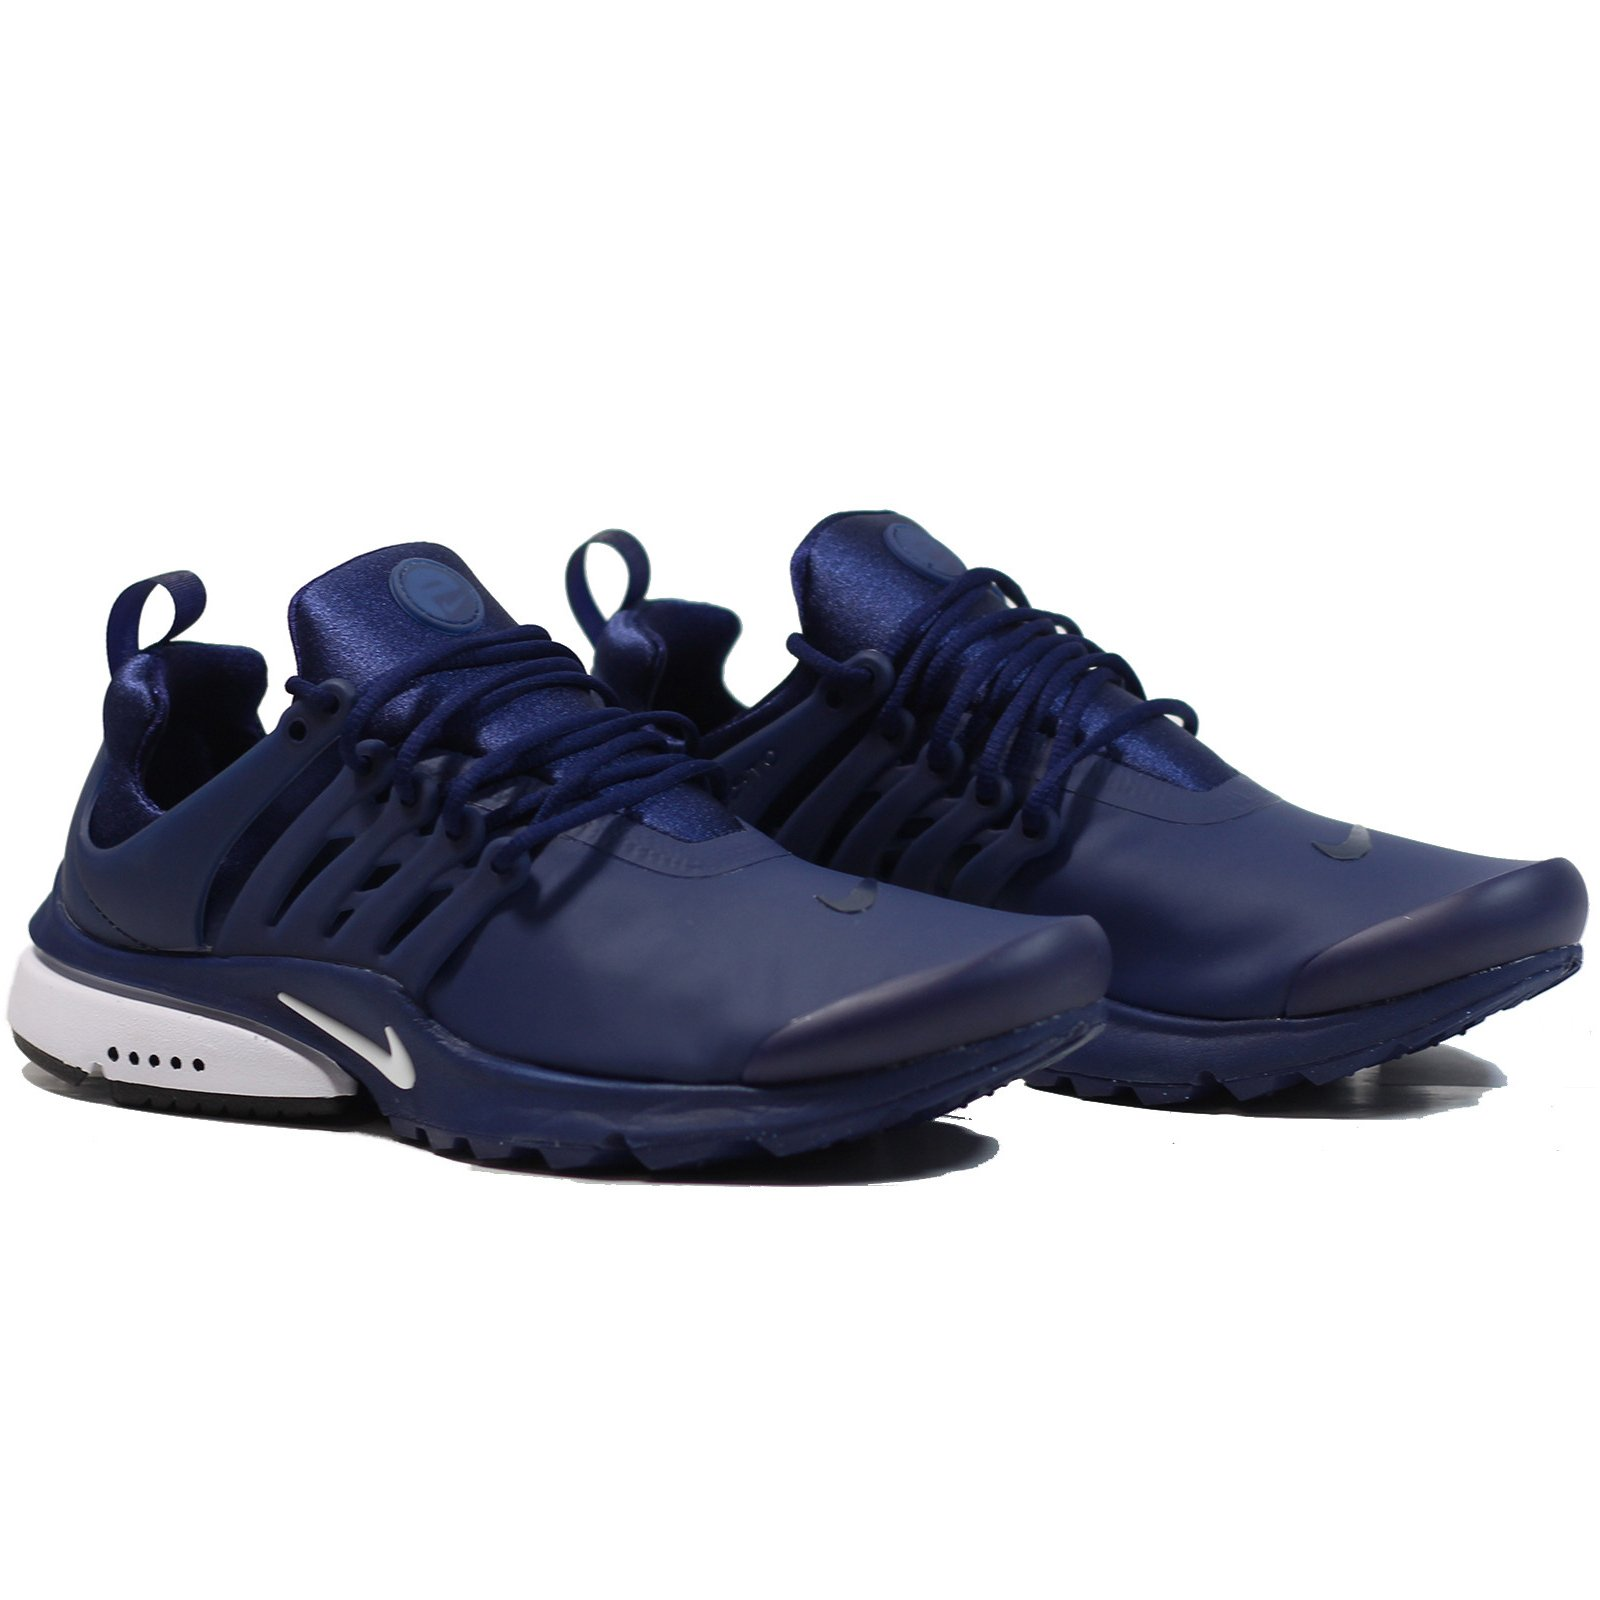 info for dde93 534e5 Galleon - Nike Mens Air Presto Utility Shoes Binary Blue White Black  862749-400 Size 10